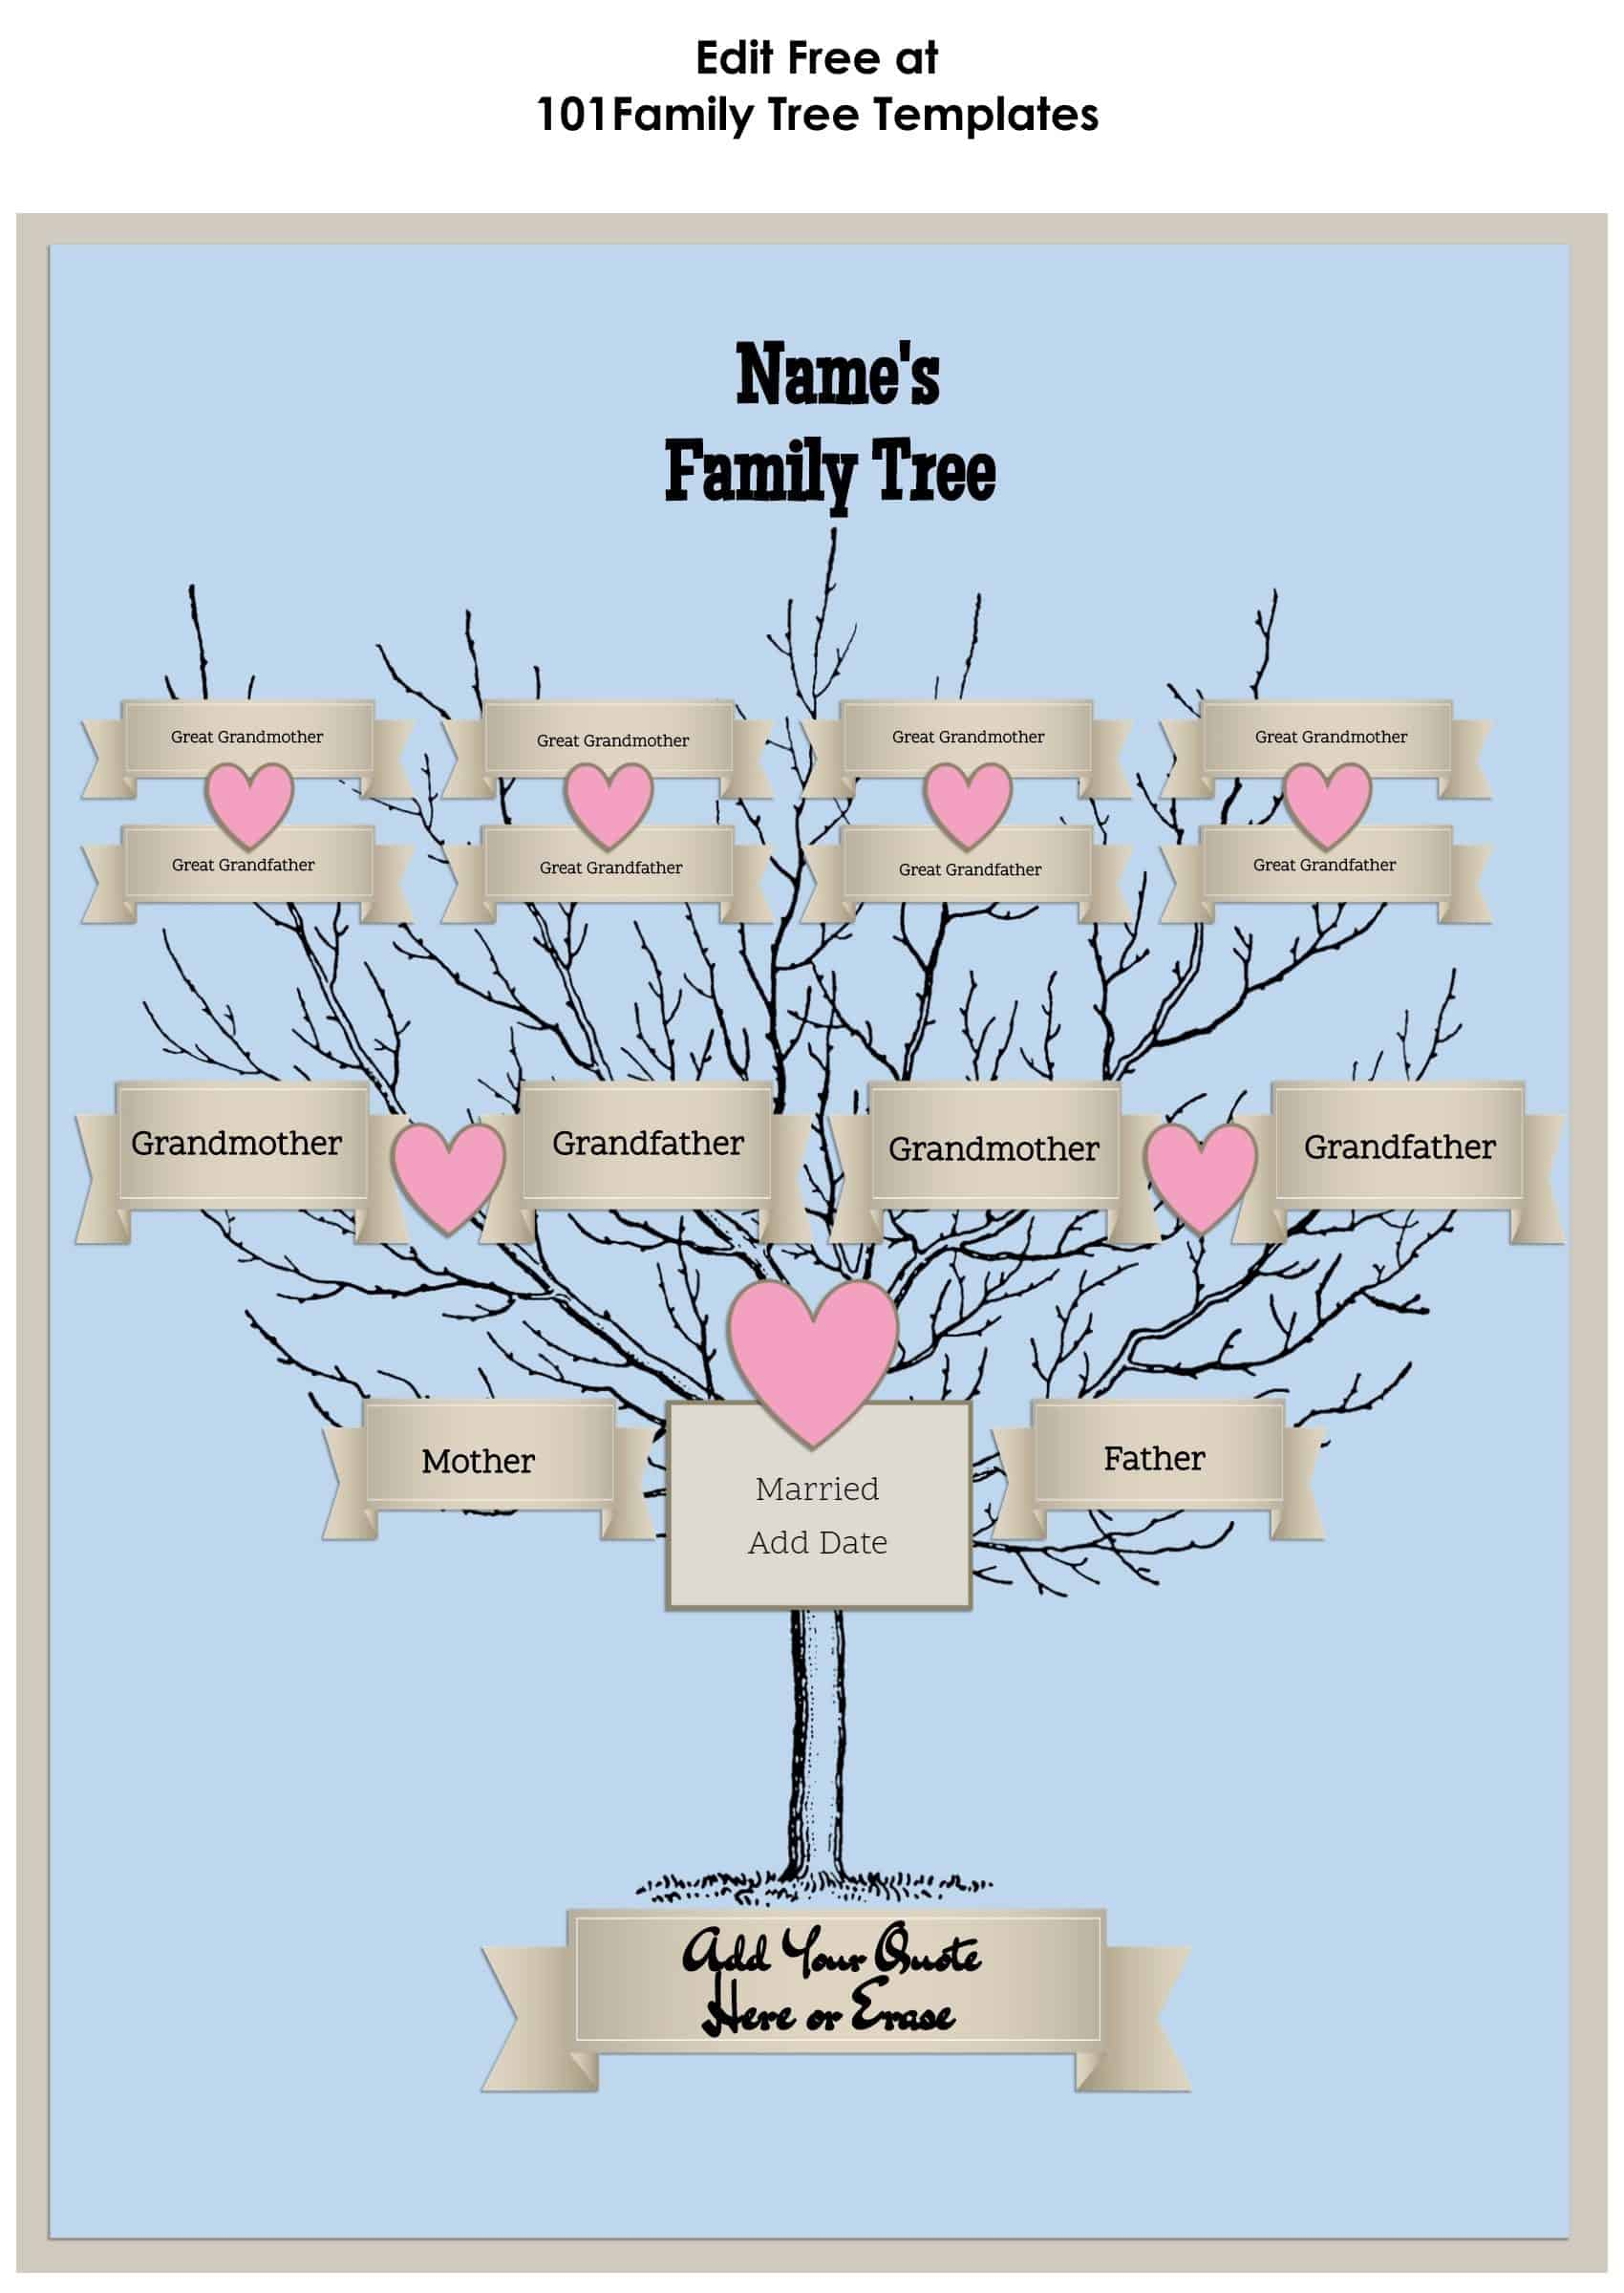 This is a graphic of Gratifying Photos Family Tree